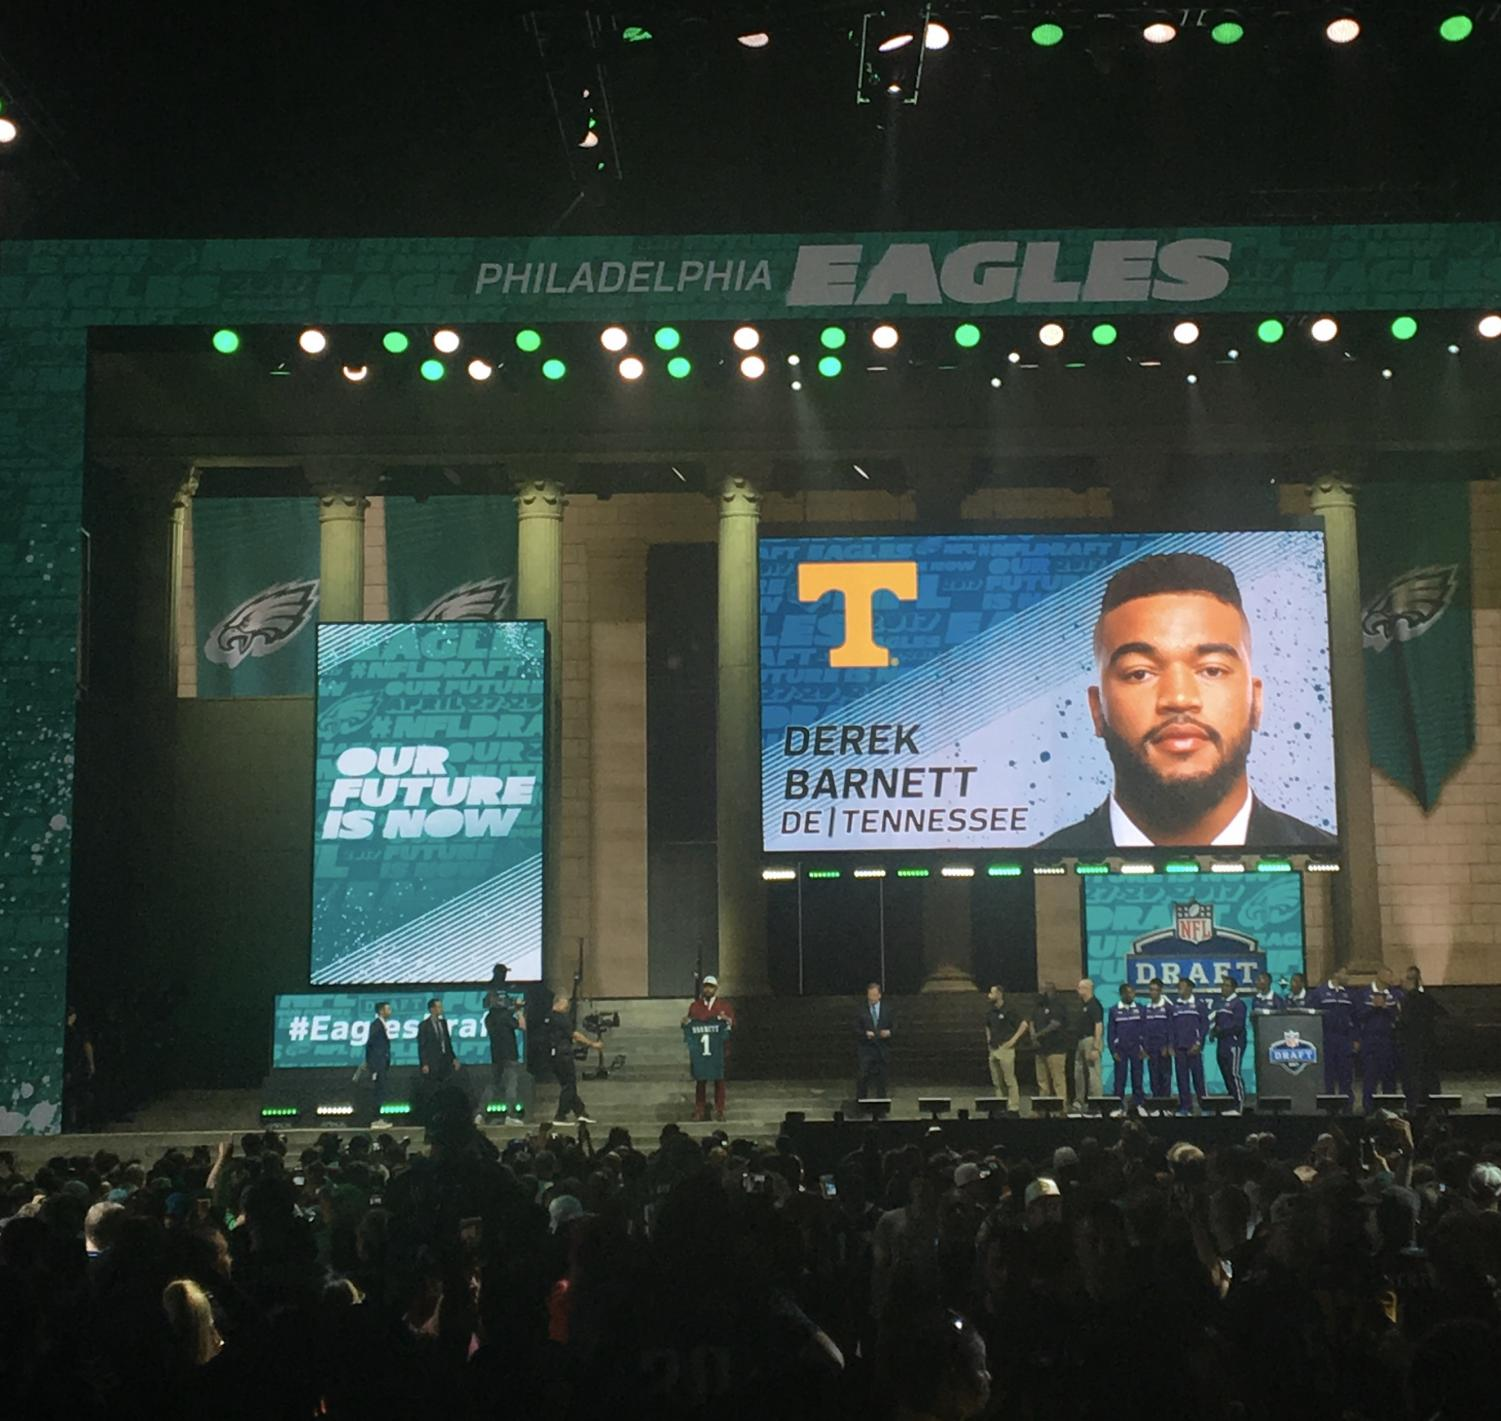 The Eagles took Tennessee's Derek Barnett with the 14th pick in the 2017 NFL Draft.